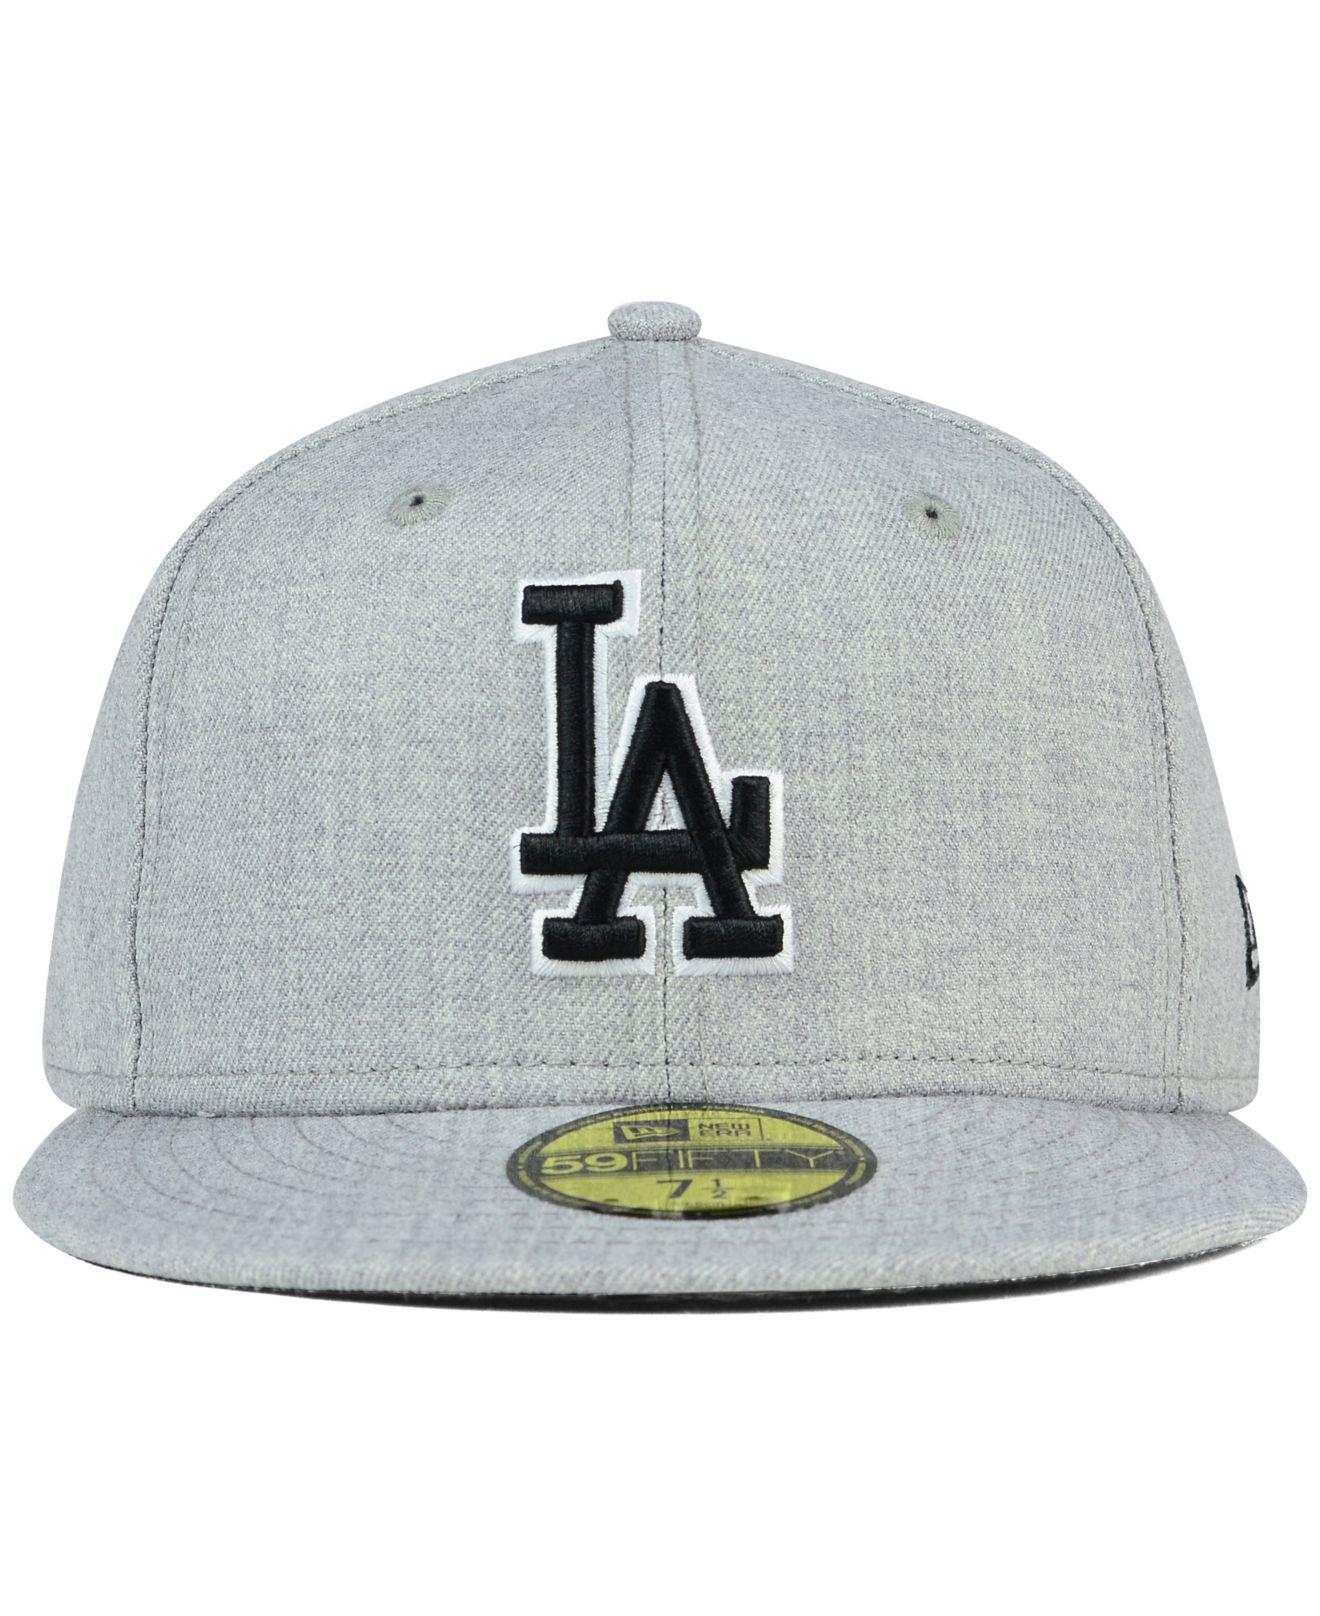 cheaper 8b7b8 f6b2e Lyst - KTZ Los Angeles Dodgers Heather Black White 59fifty Cap in Gray for  Men